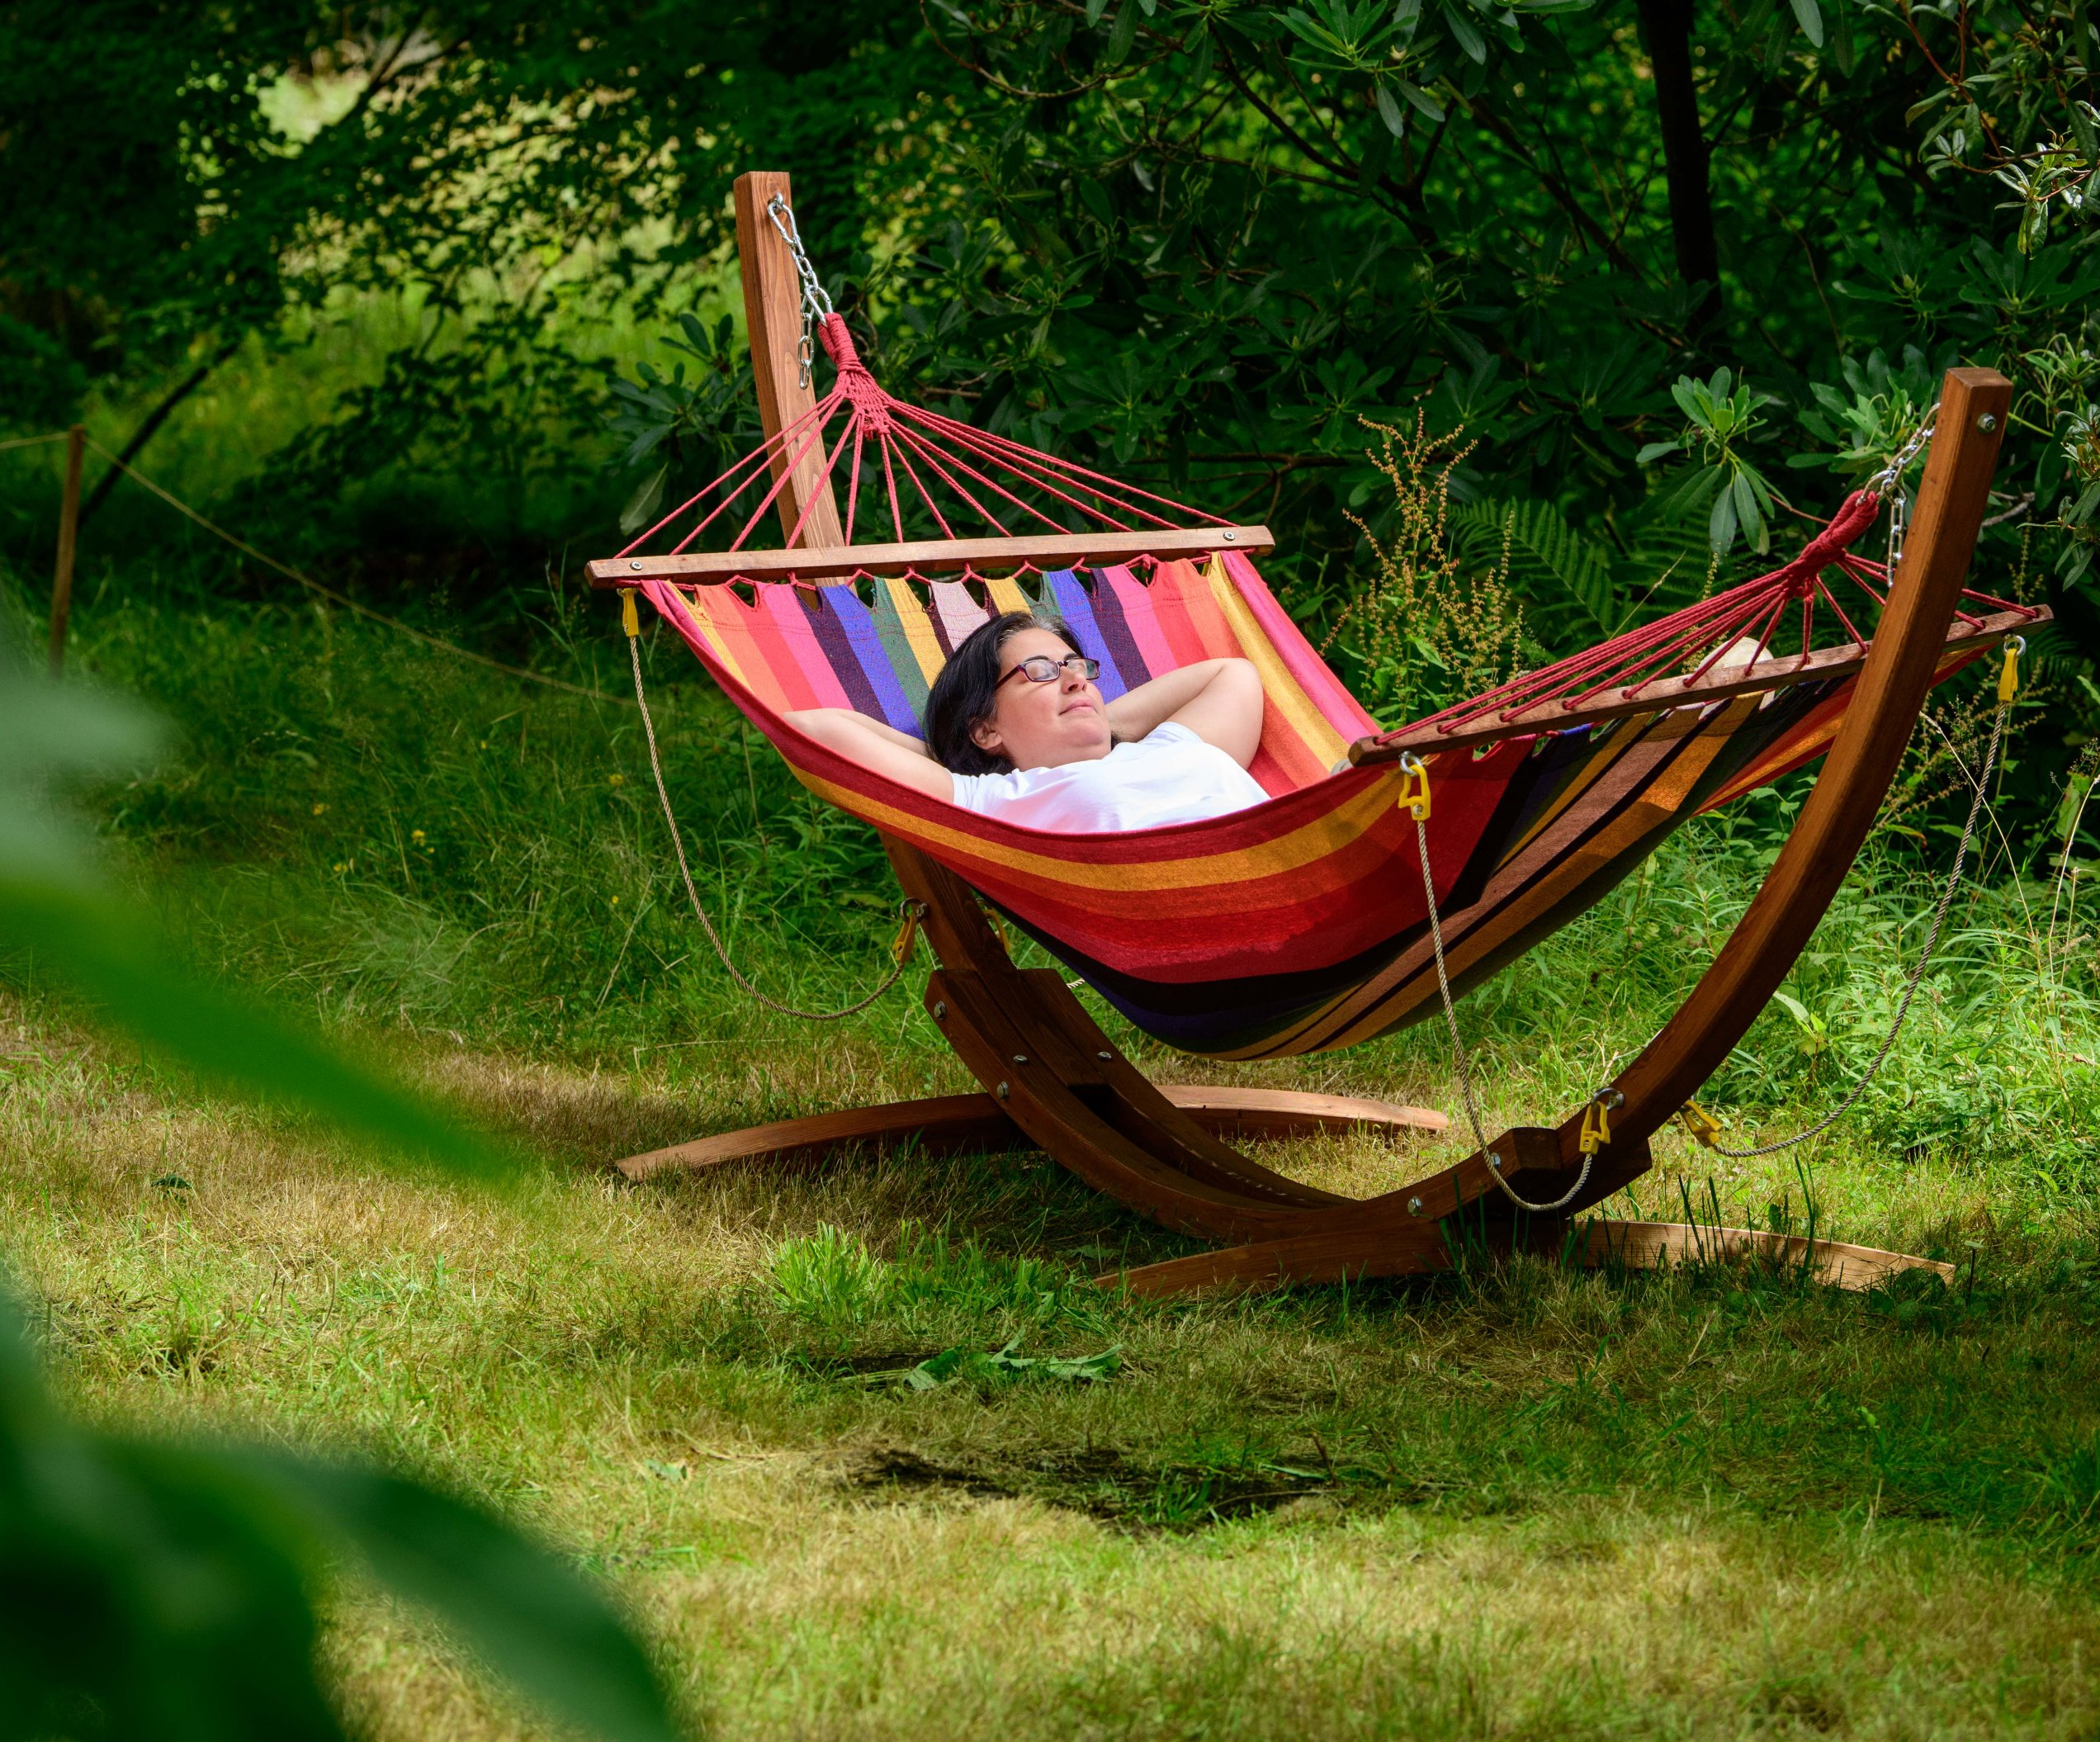 A woman lays in a colourful hammock amongst a forest glade